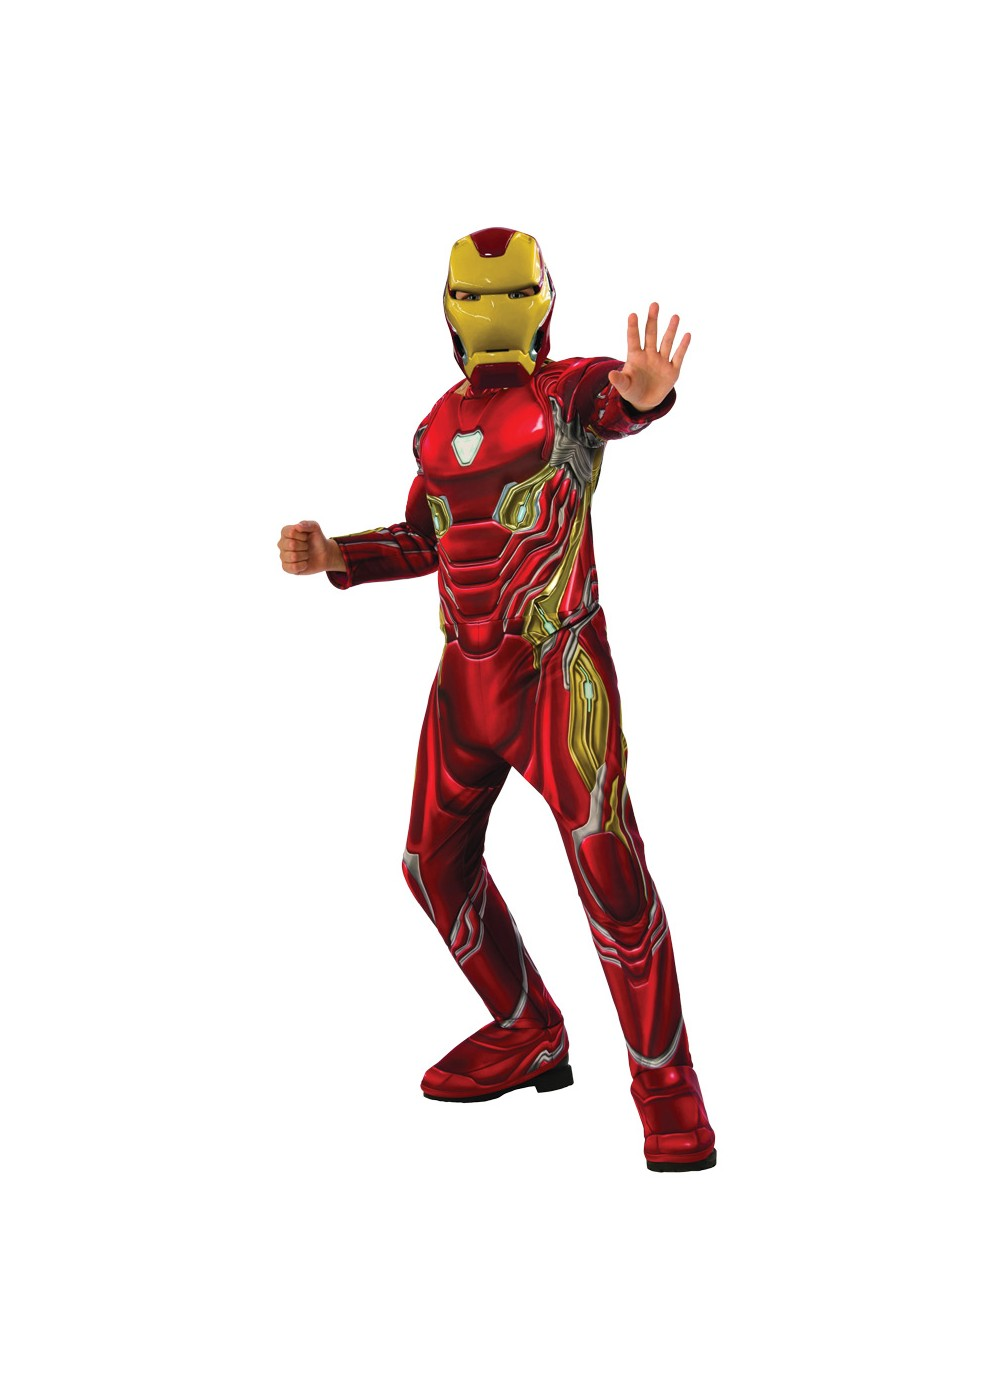 Boys Endgame Iron Man Mark 50 Suit Costume